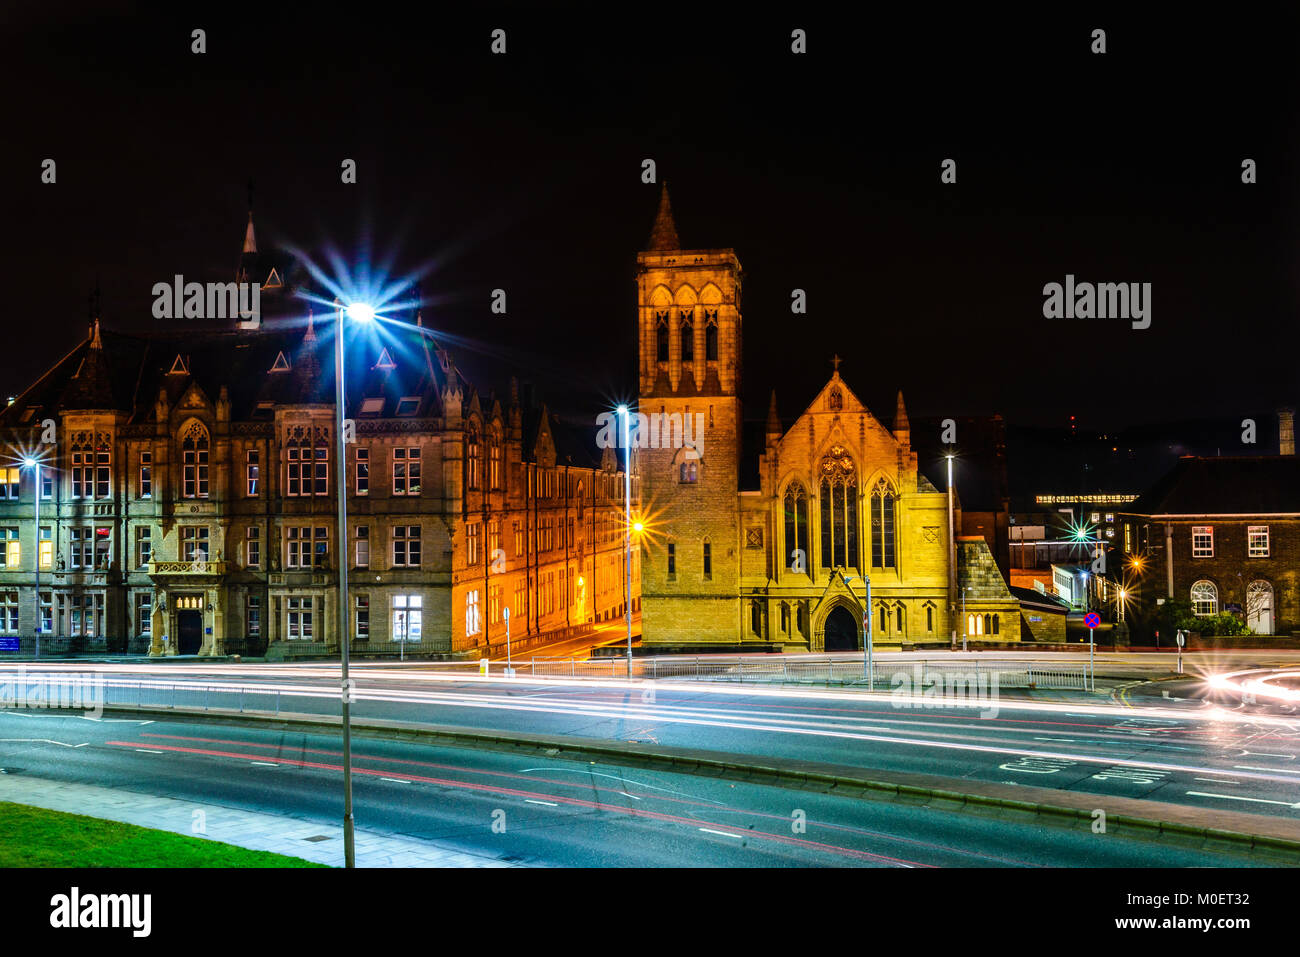 Ramsden building and The former Milton Utd Reformed Church and Plaza nightclub on Queen St South, Huddersfield, Stock Photo